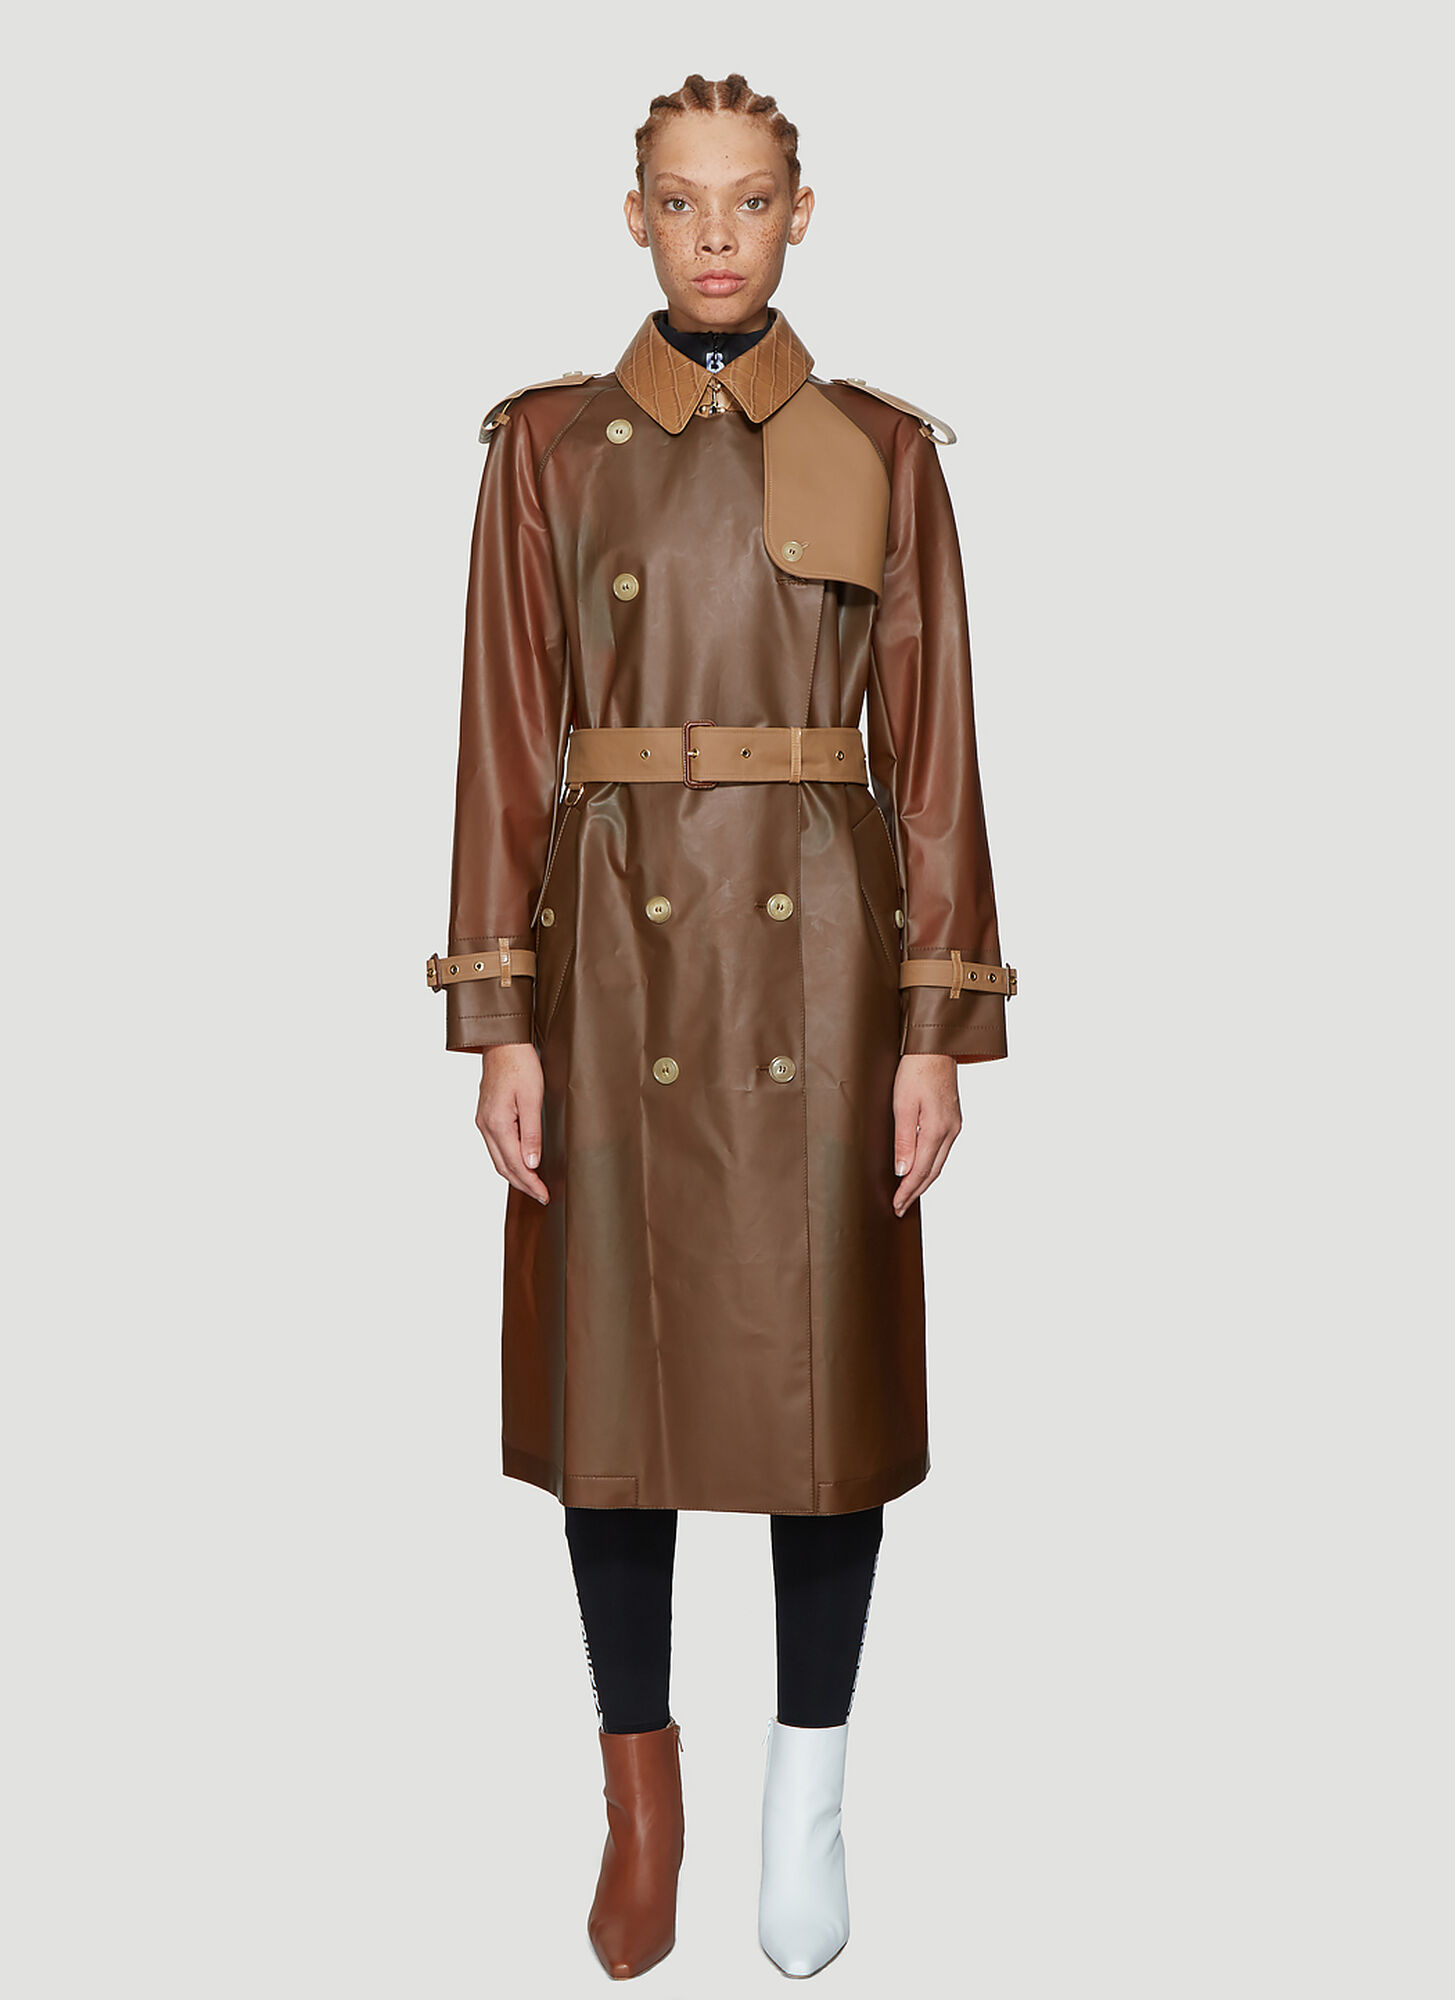 Burberry Contrast Panel Trench Coat in Brown